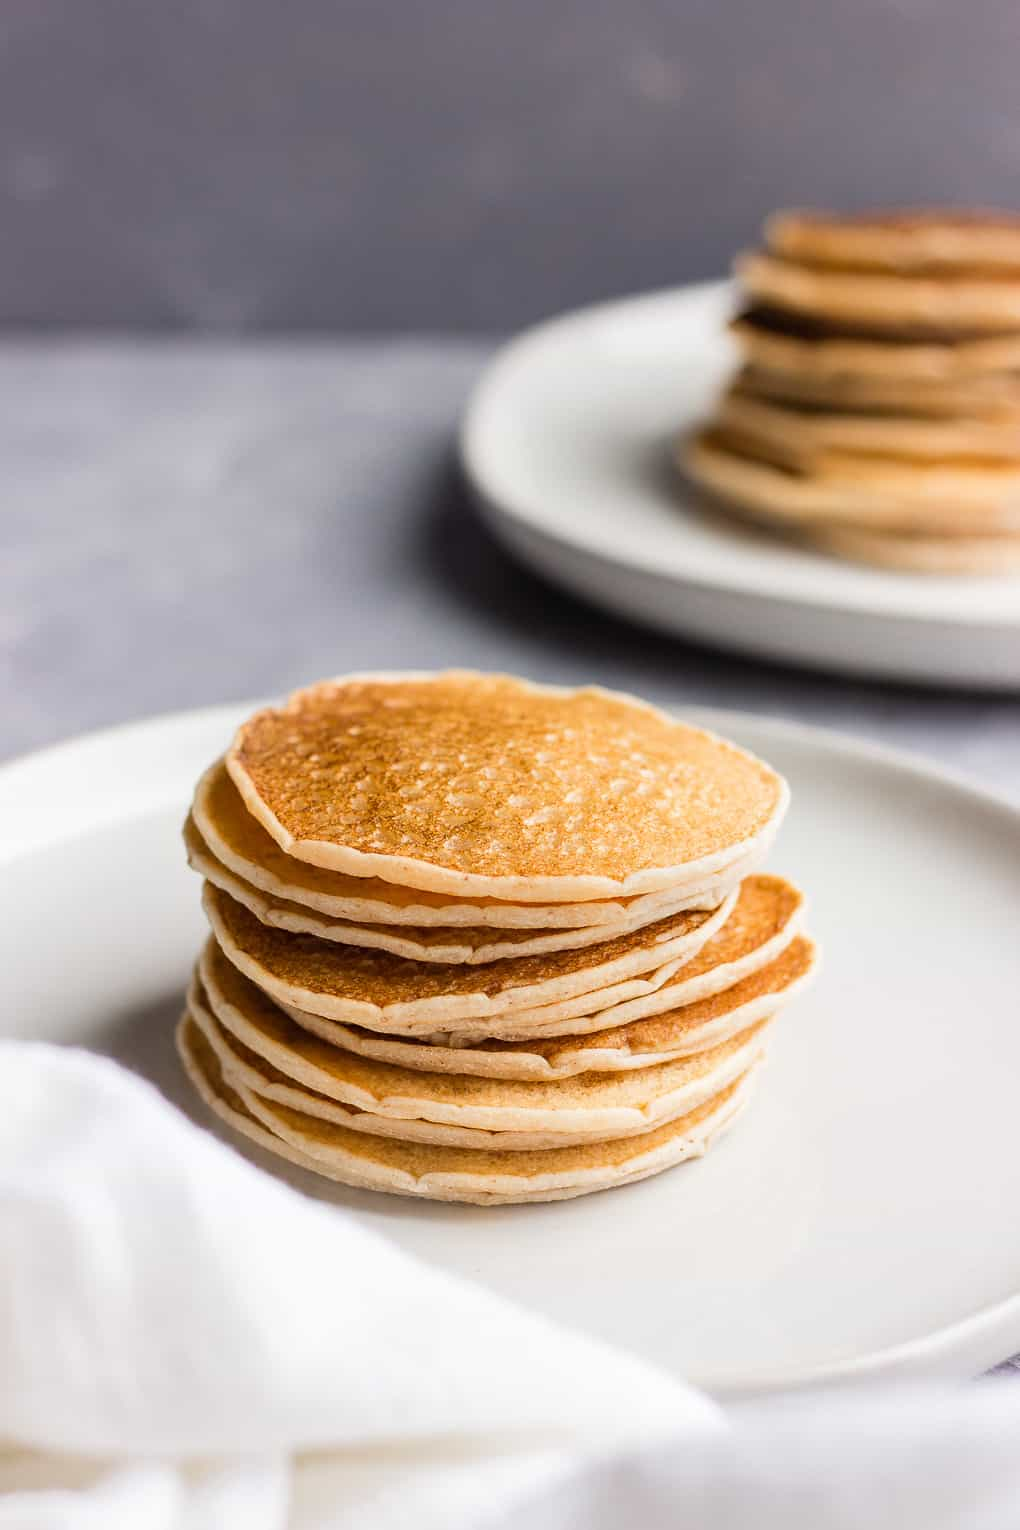 Stack of grain-free pancakes